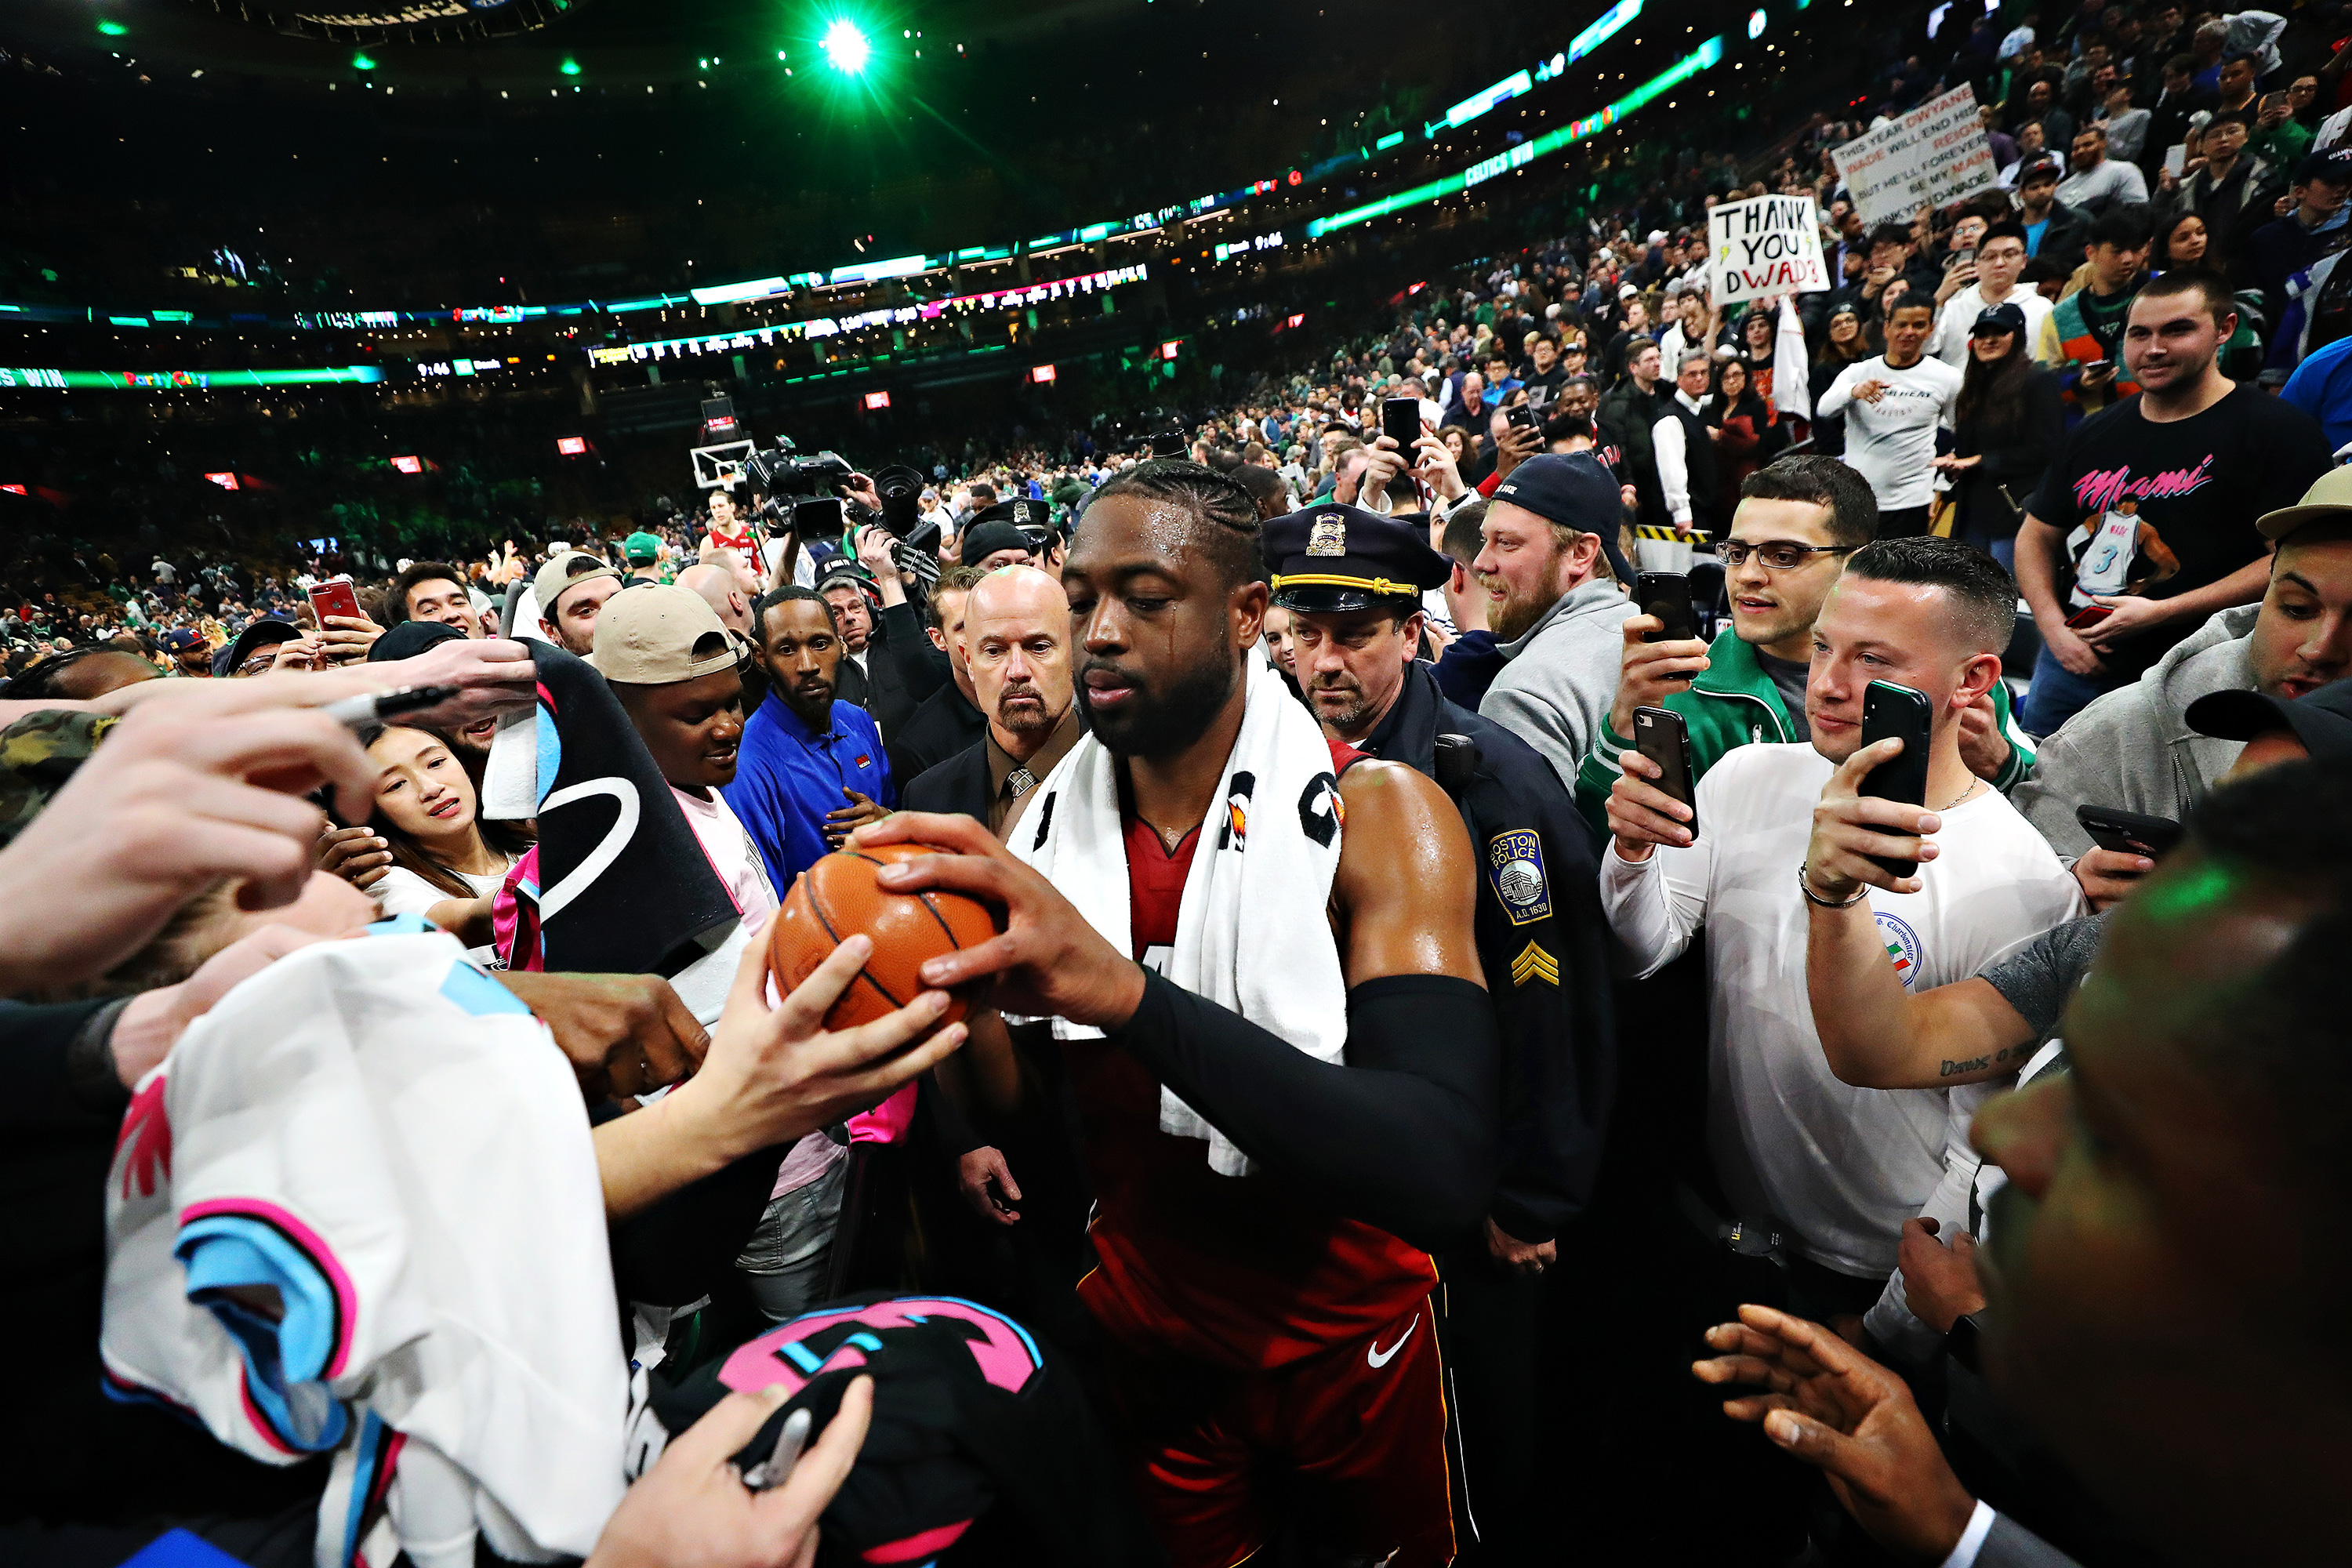 5f51b6e793d4 Dwyane Wade signs autographs after his final game at TD Garden April 2 in  Boston. The Celtics defeated the Heat